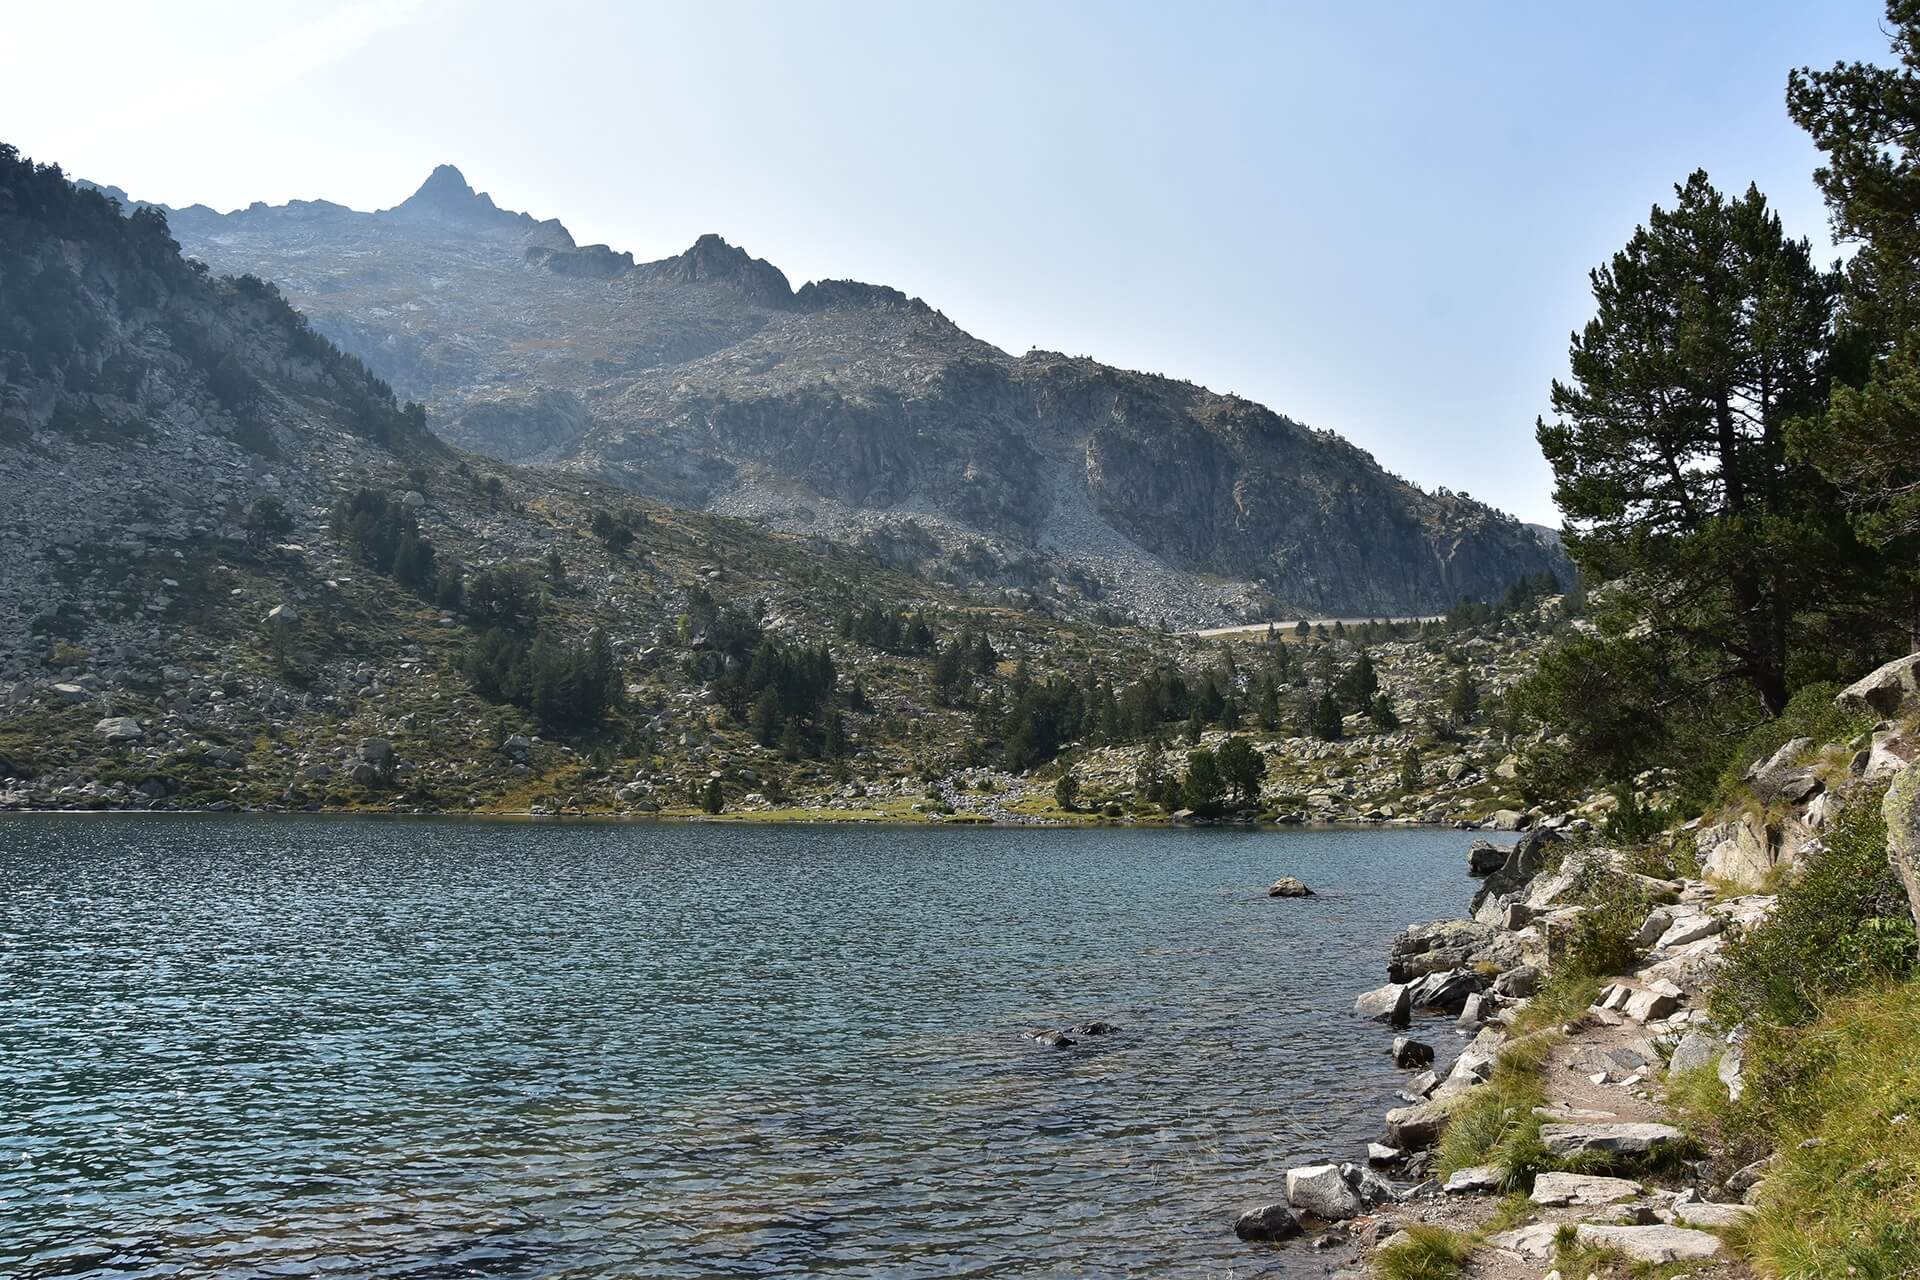 Last part of the Oredon, Aubert, and Aumar lakes hike in French Pyrenees